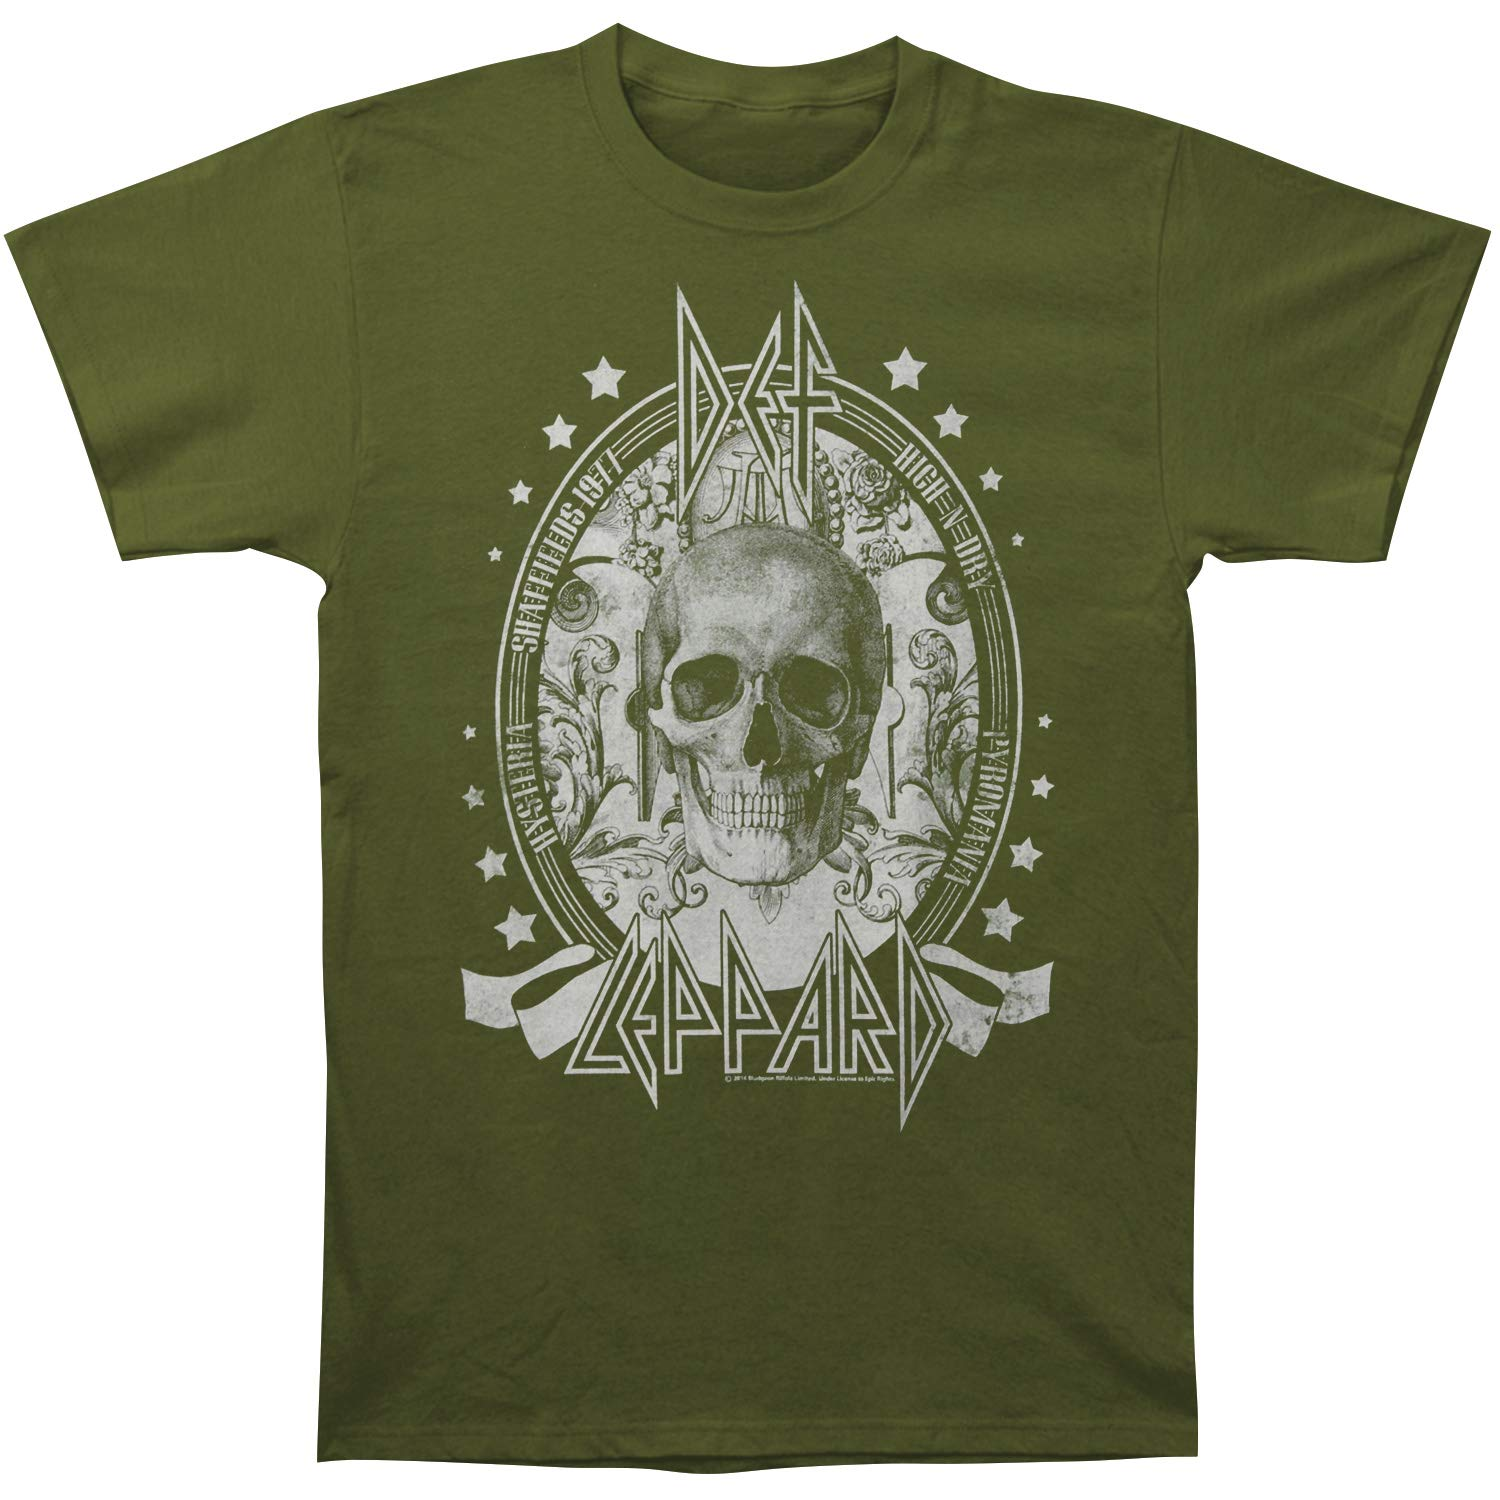 Amazon.com  Def Leppard Men s Skull Slim Fit T-Shirt Army Green  Clothing 8beee79459c